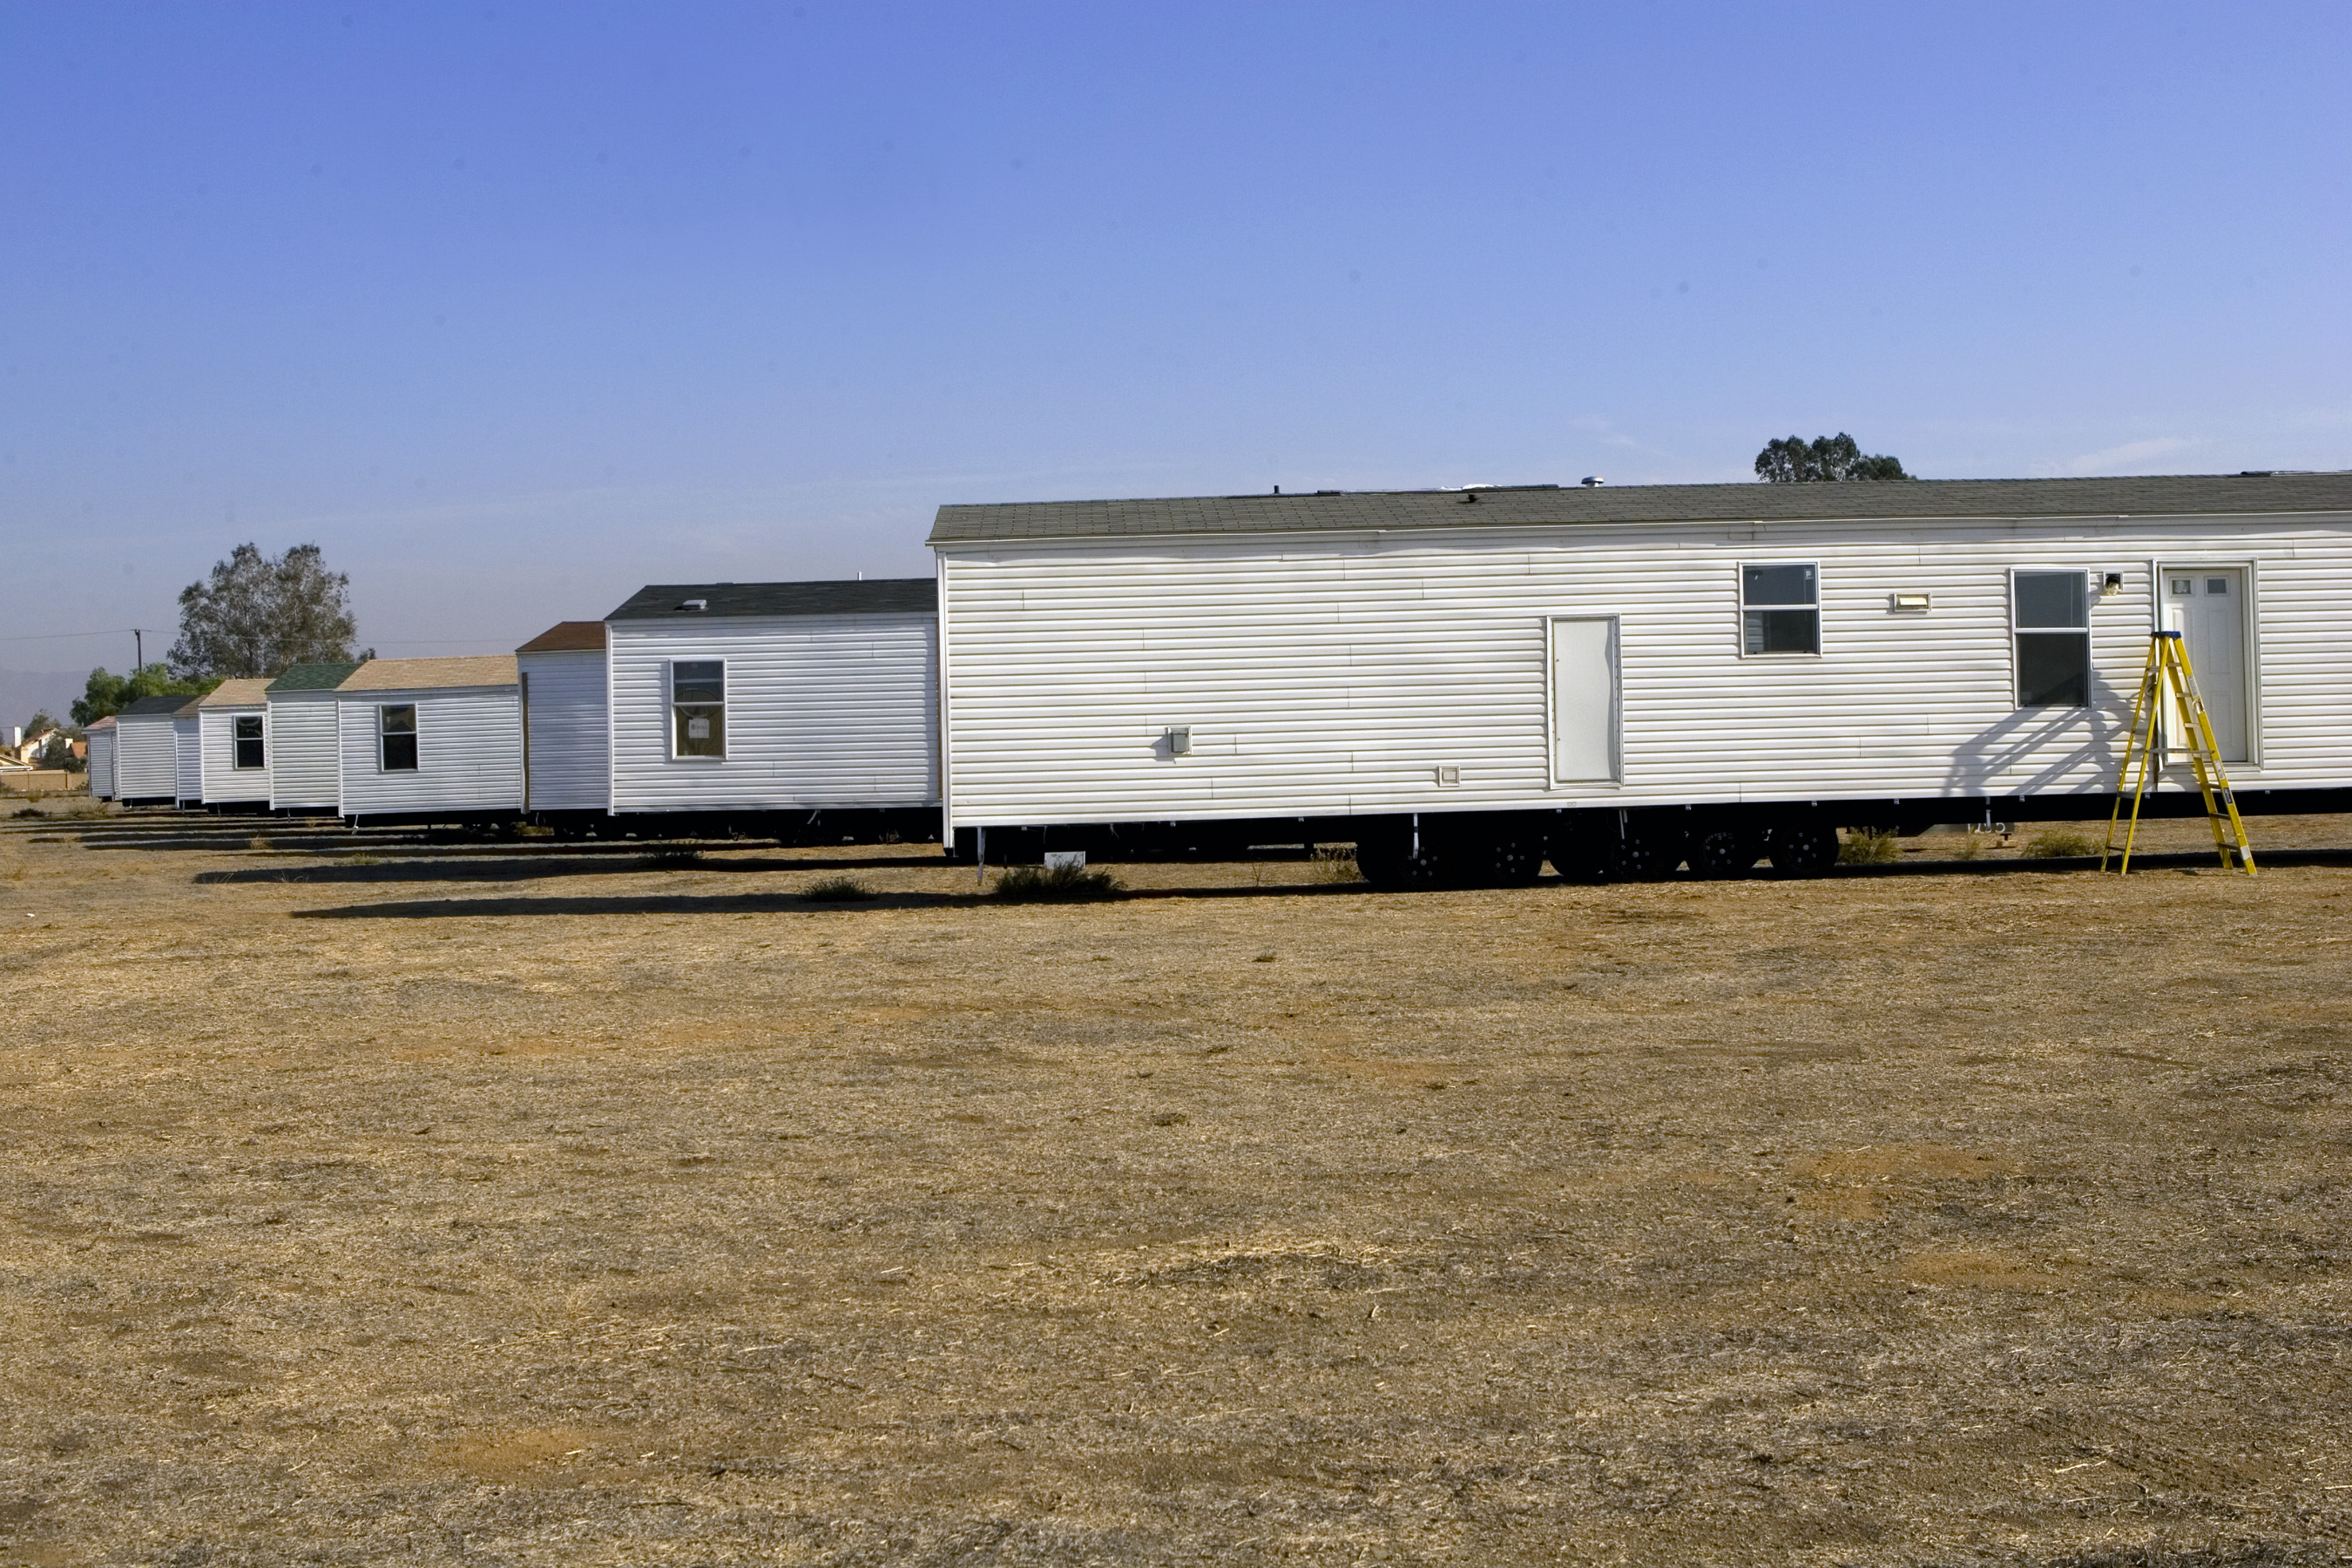 File:FEMA - 33532 - FEMA mobile home stageing site in California.jpg on southern energy mobile homes, justice mobile homes, craigslist mobile homes, rv mobile homes, cheap mobile homes, hawaii mobile homes, marshfield mobile homes, insides bathrooms mobile homes, trailer trash mobile homes, multiple mobile homes, upscale mobile homes, refurbished mobile homes, acadiana homes, adding additions to mobile homes, hud mobile homes, prefab additions for mobile homes, texas mobile homes, new orleans mobile homes, california mobile homes,